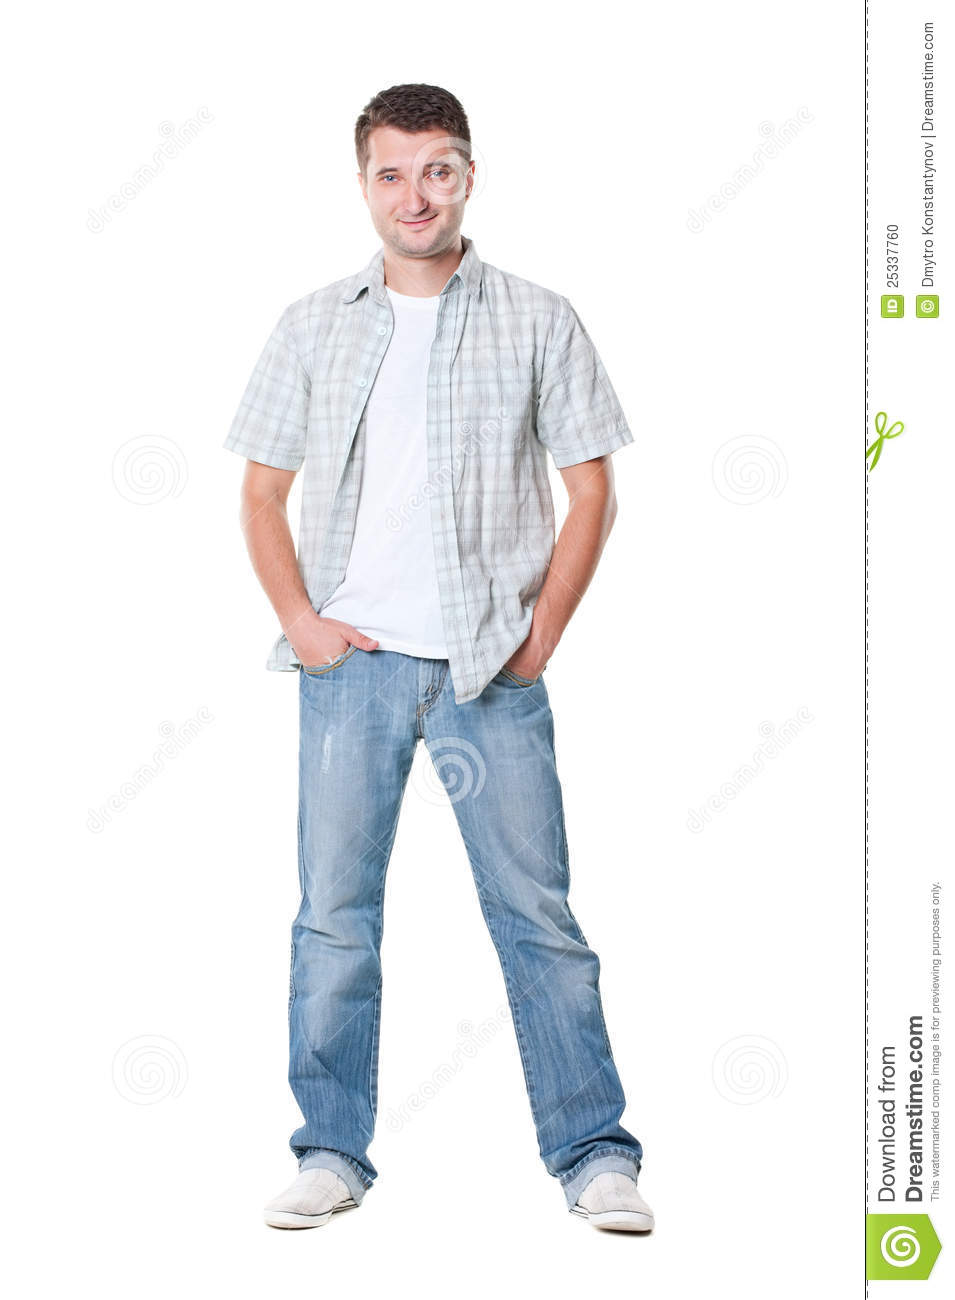 Casual Young Man In Shirt And Jeans Stock Photo - Image of white ... 5b5d90b0dac